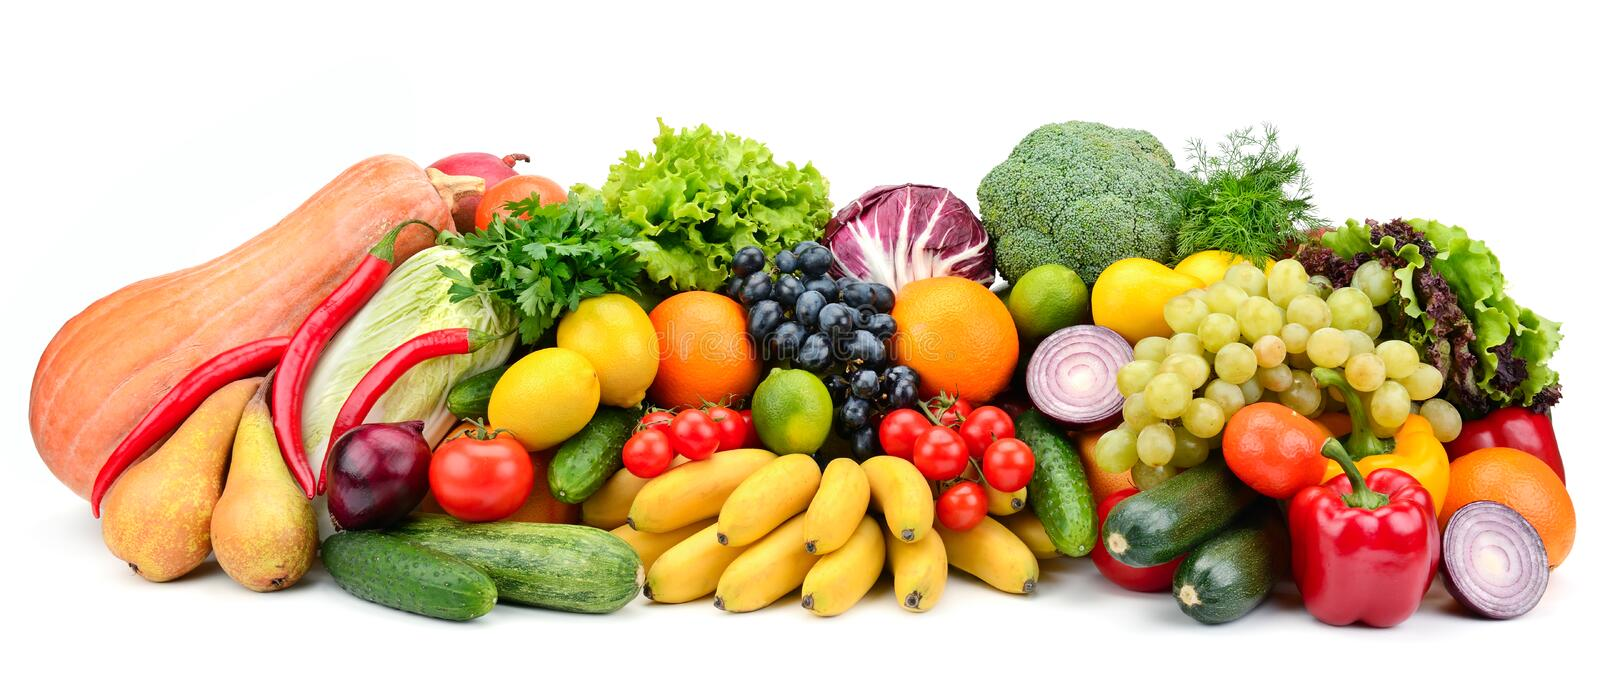 Heap fruit and vegetables isolated on white royalty free stock photos